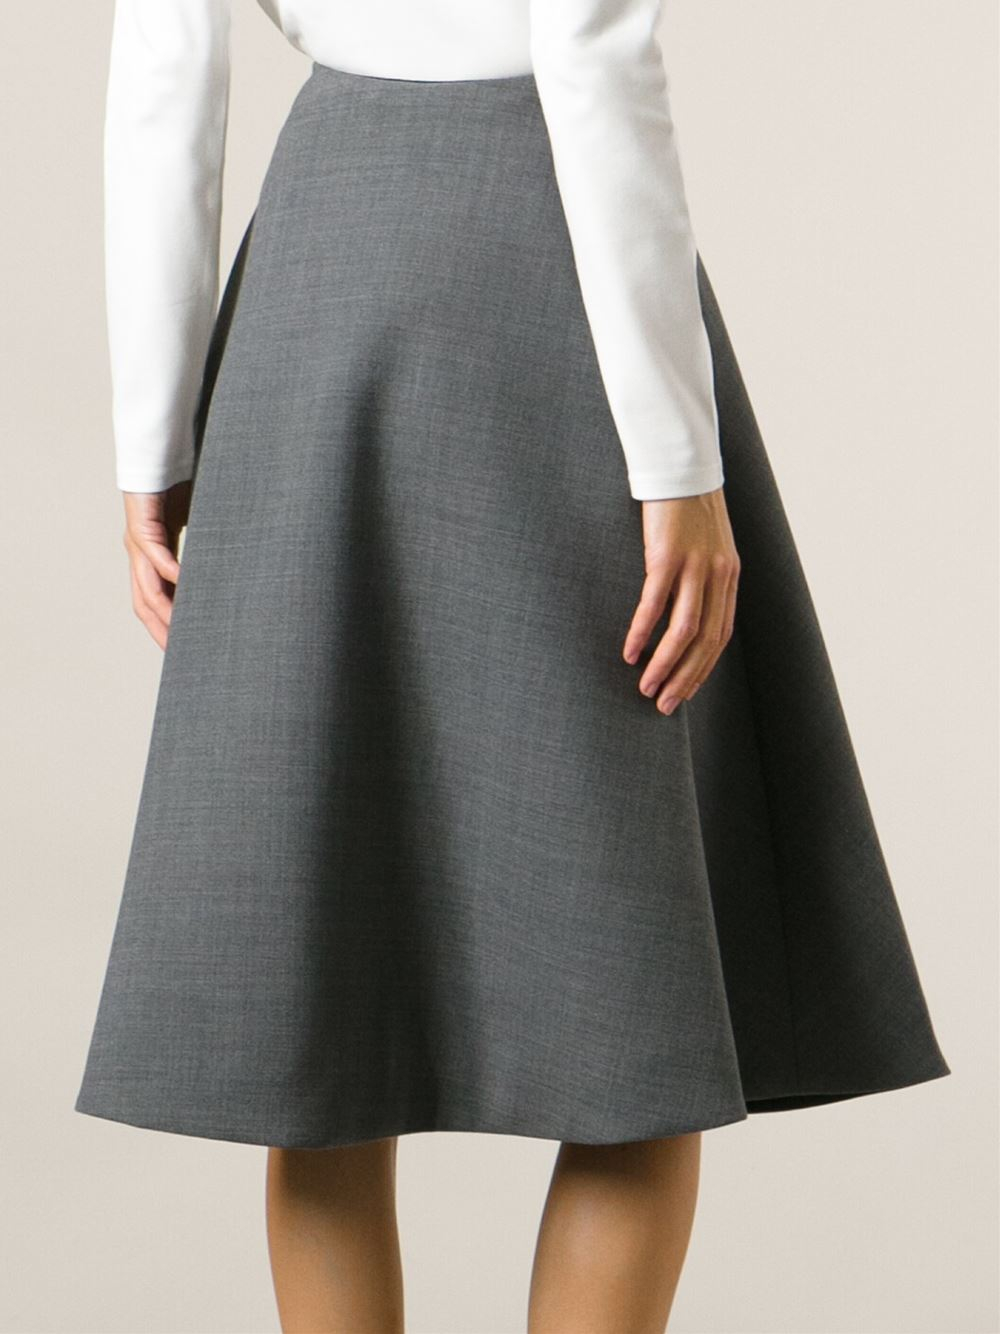 Marc by marc jacobs A-Line Midi Skirt in Gray | Lyst